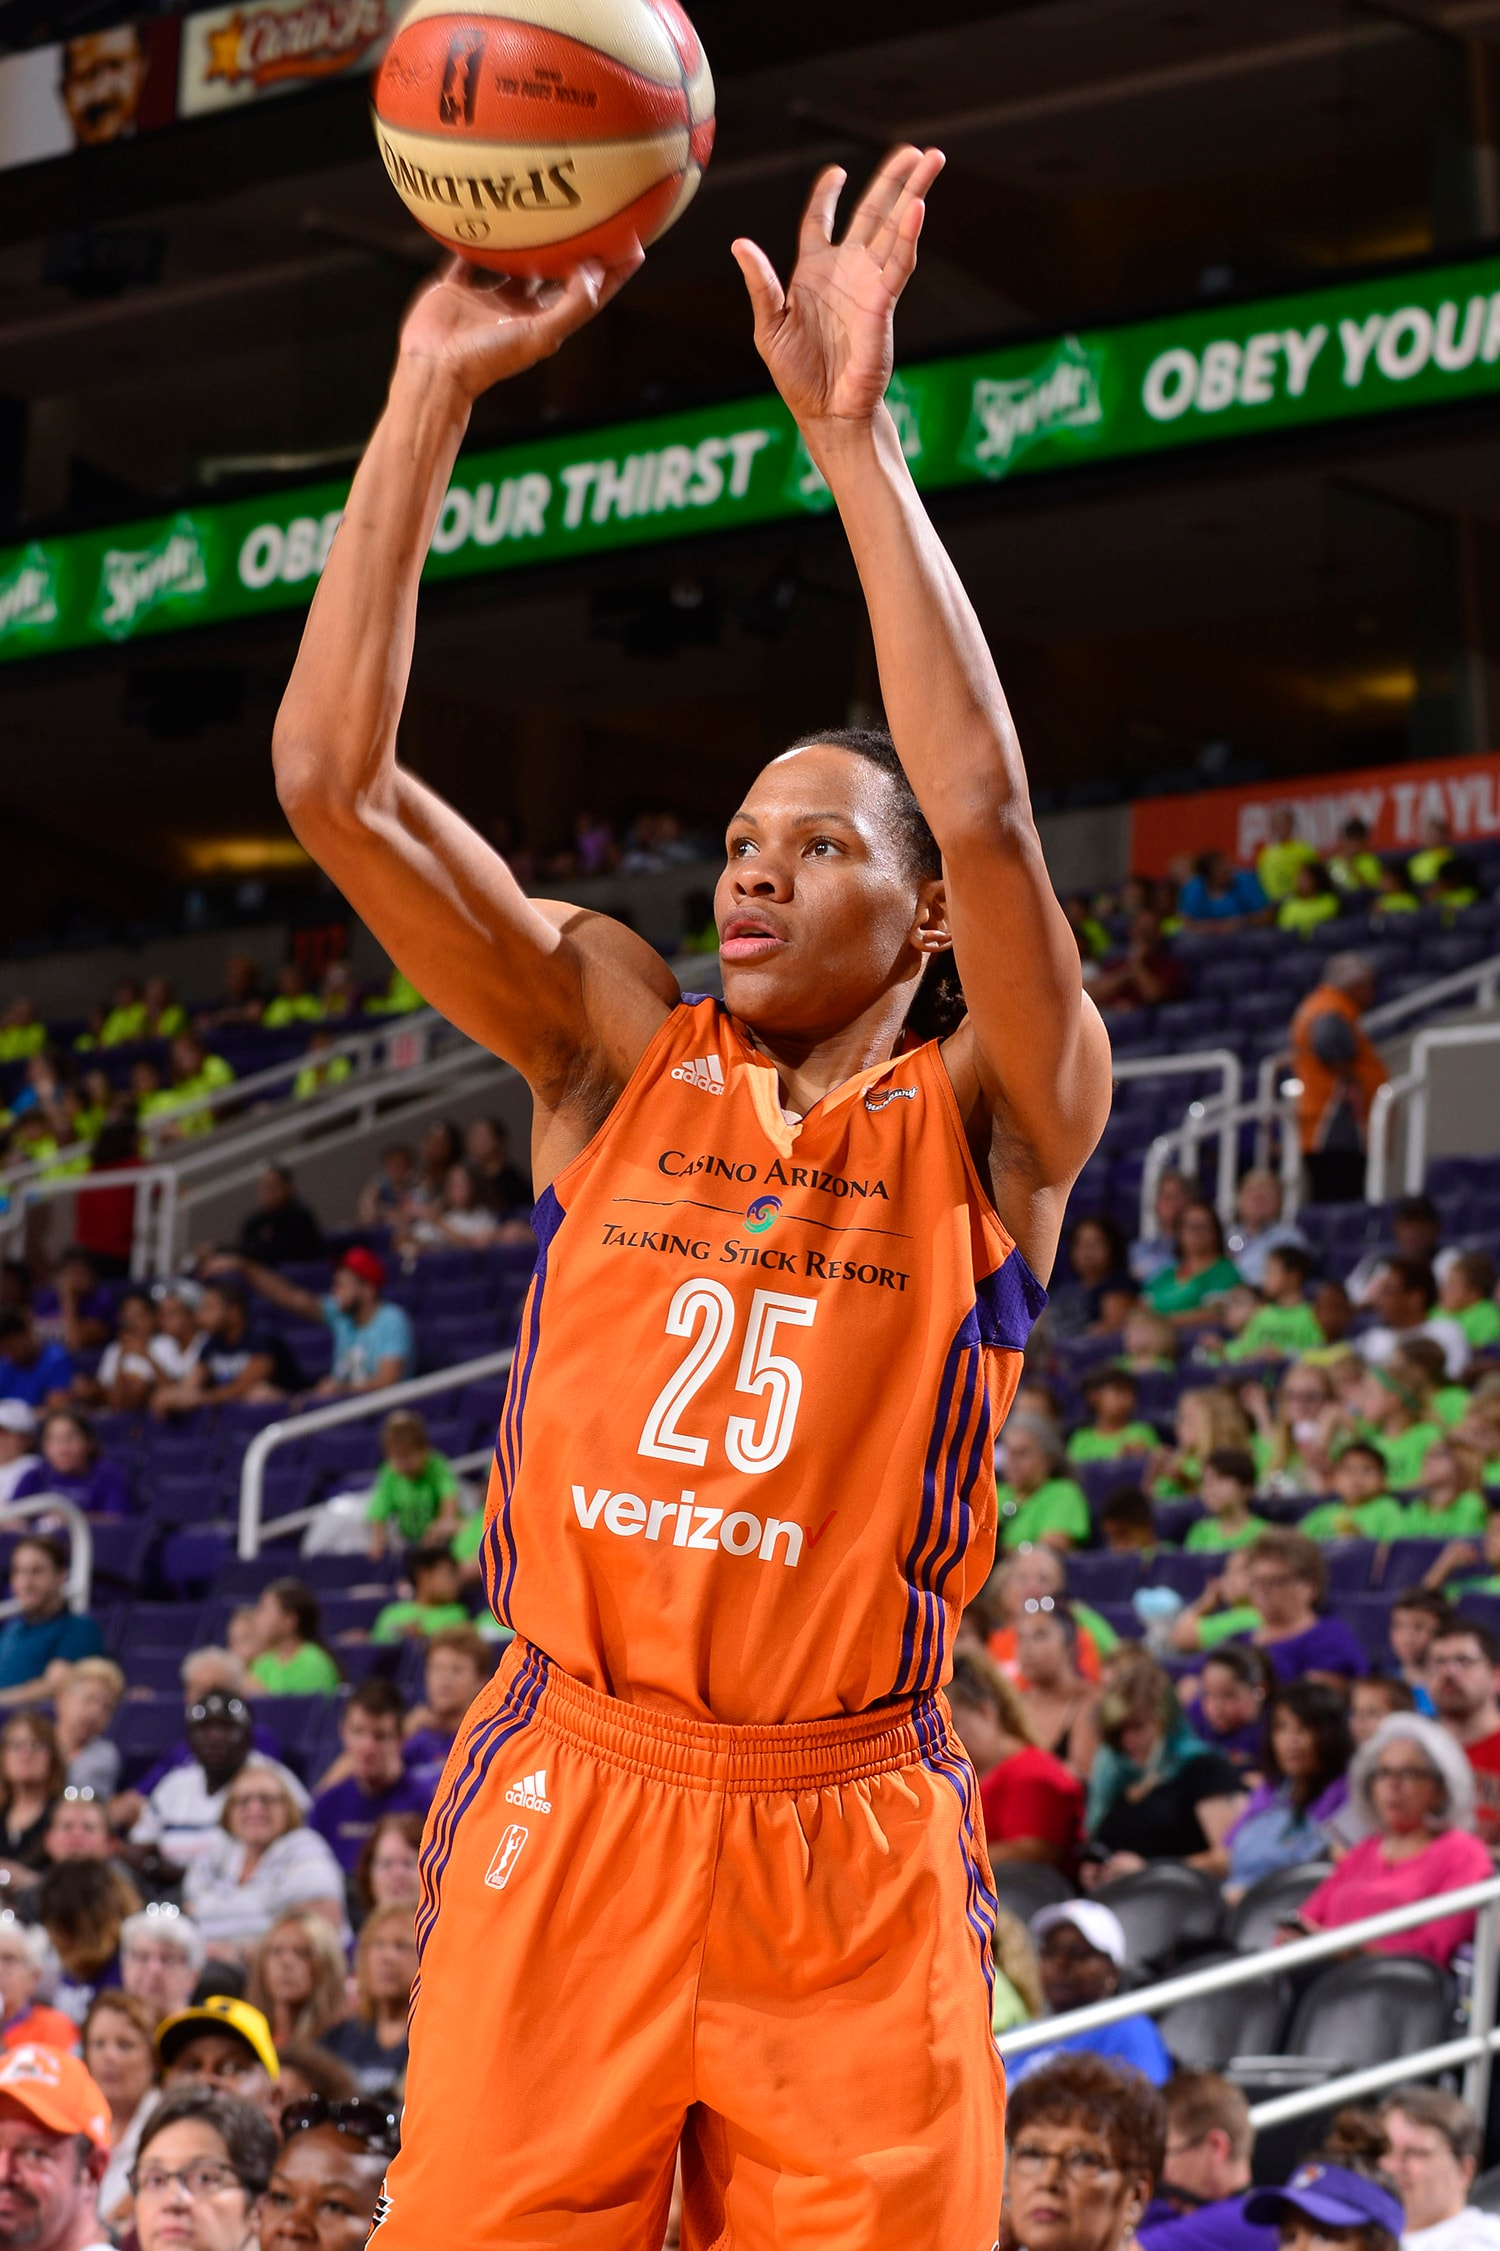 phoenix mercury indiana fever july 19, 2017 monique currie